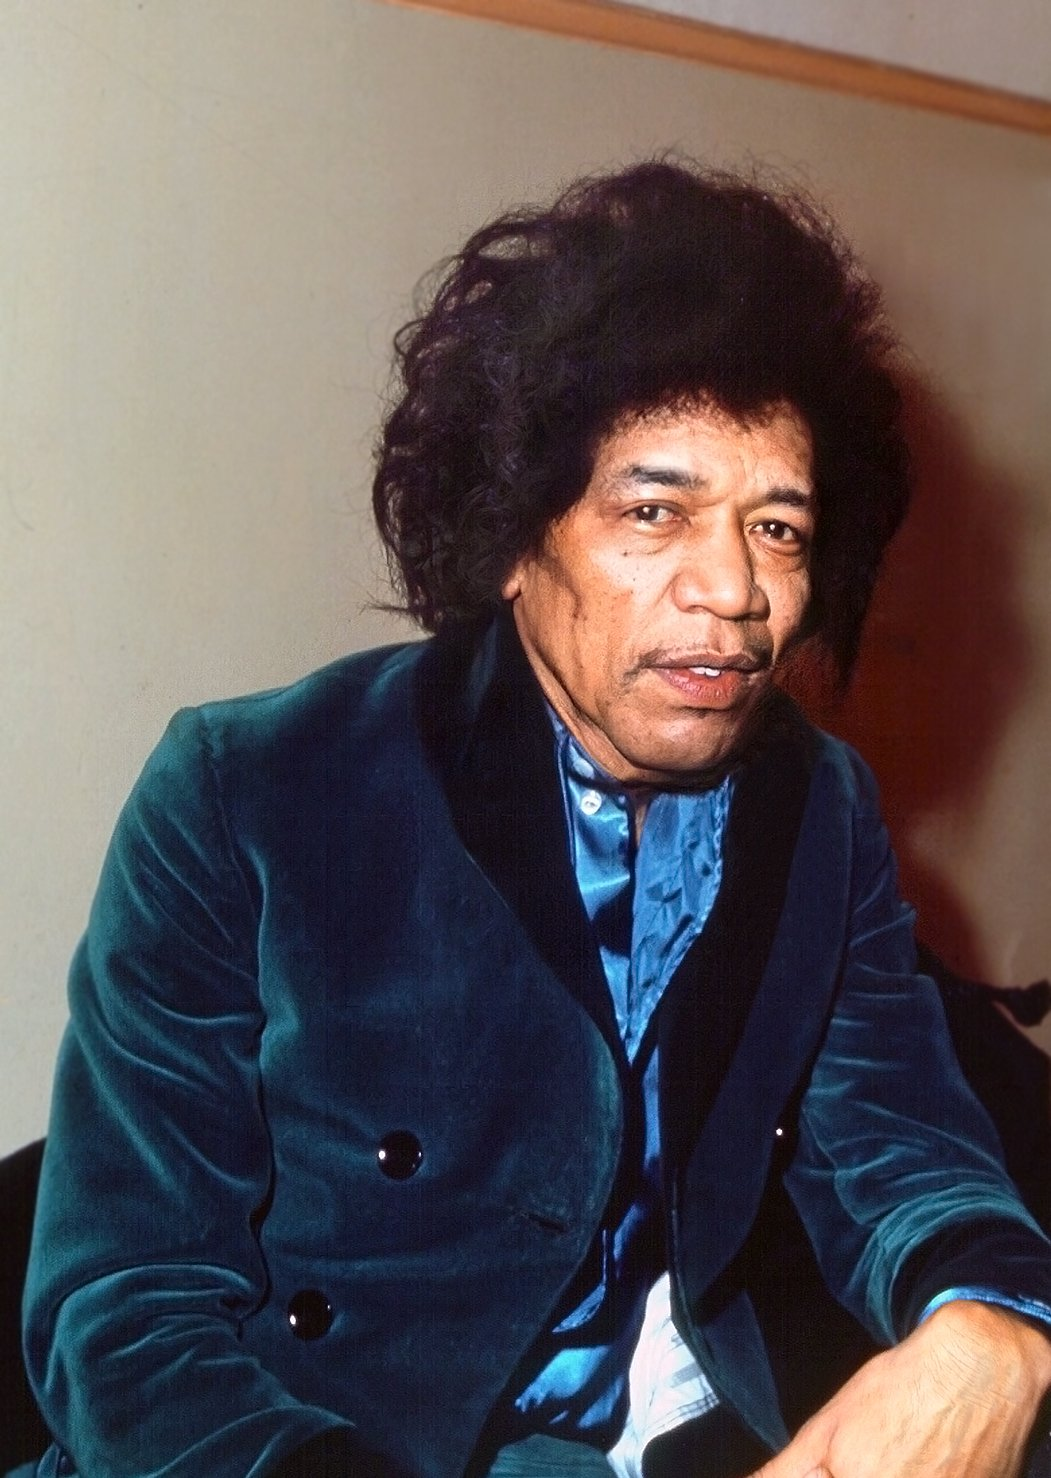 Jimi Hendrix as he might have looked in his 70s | Source: Getty Images